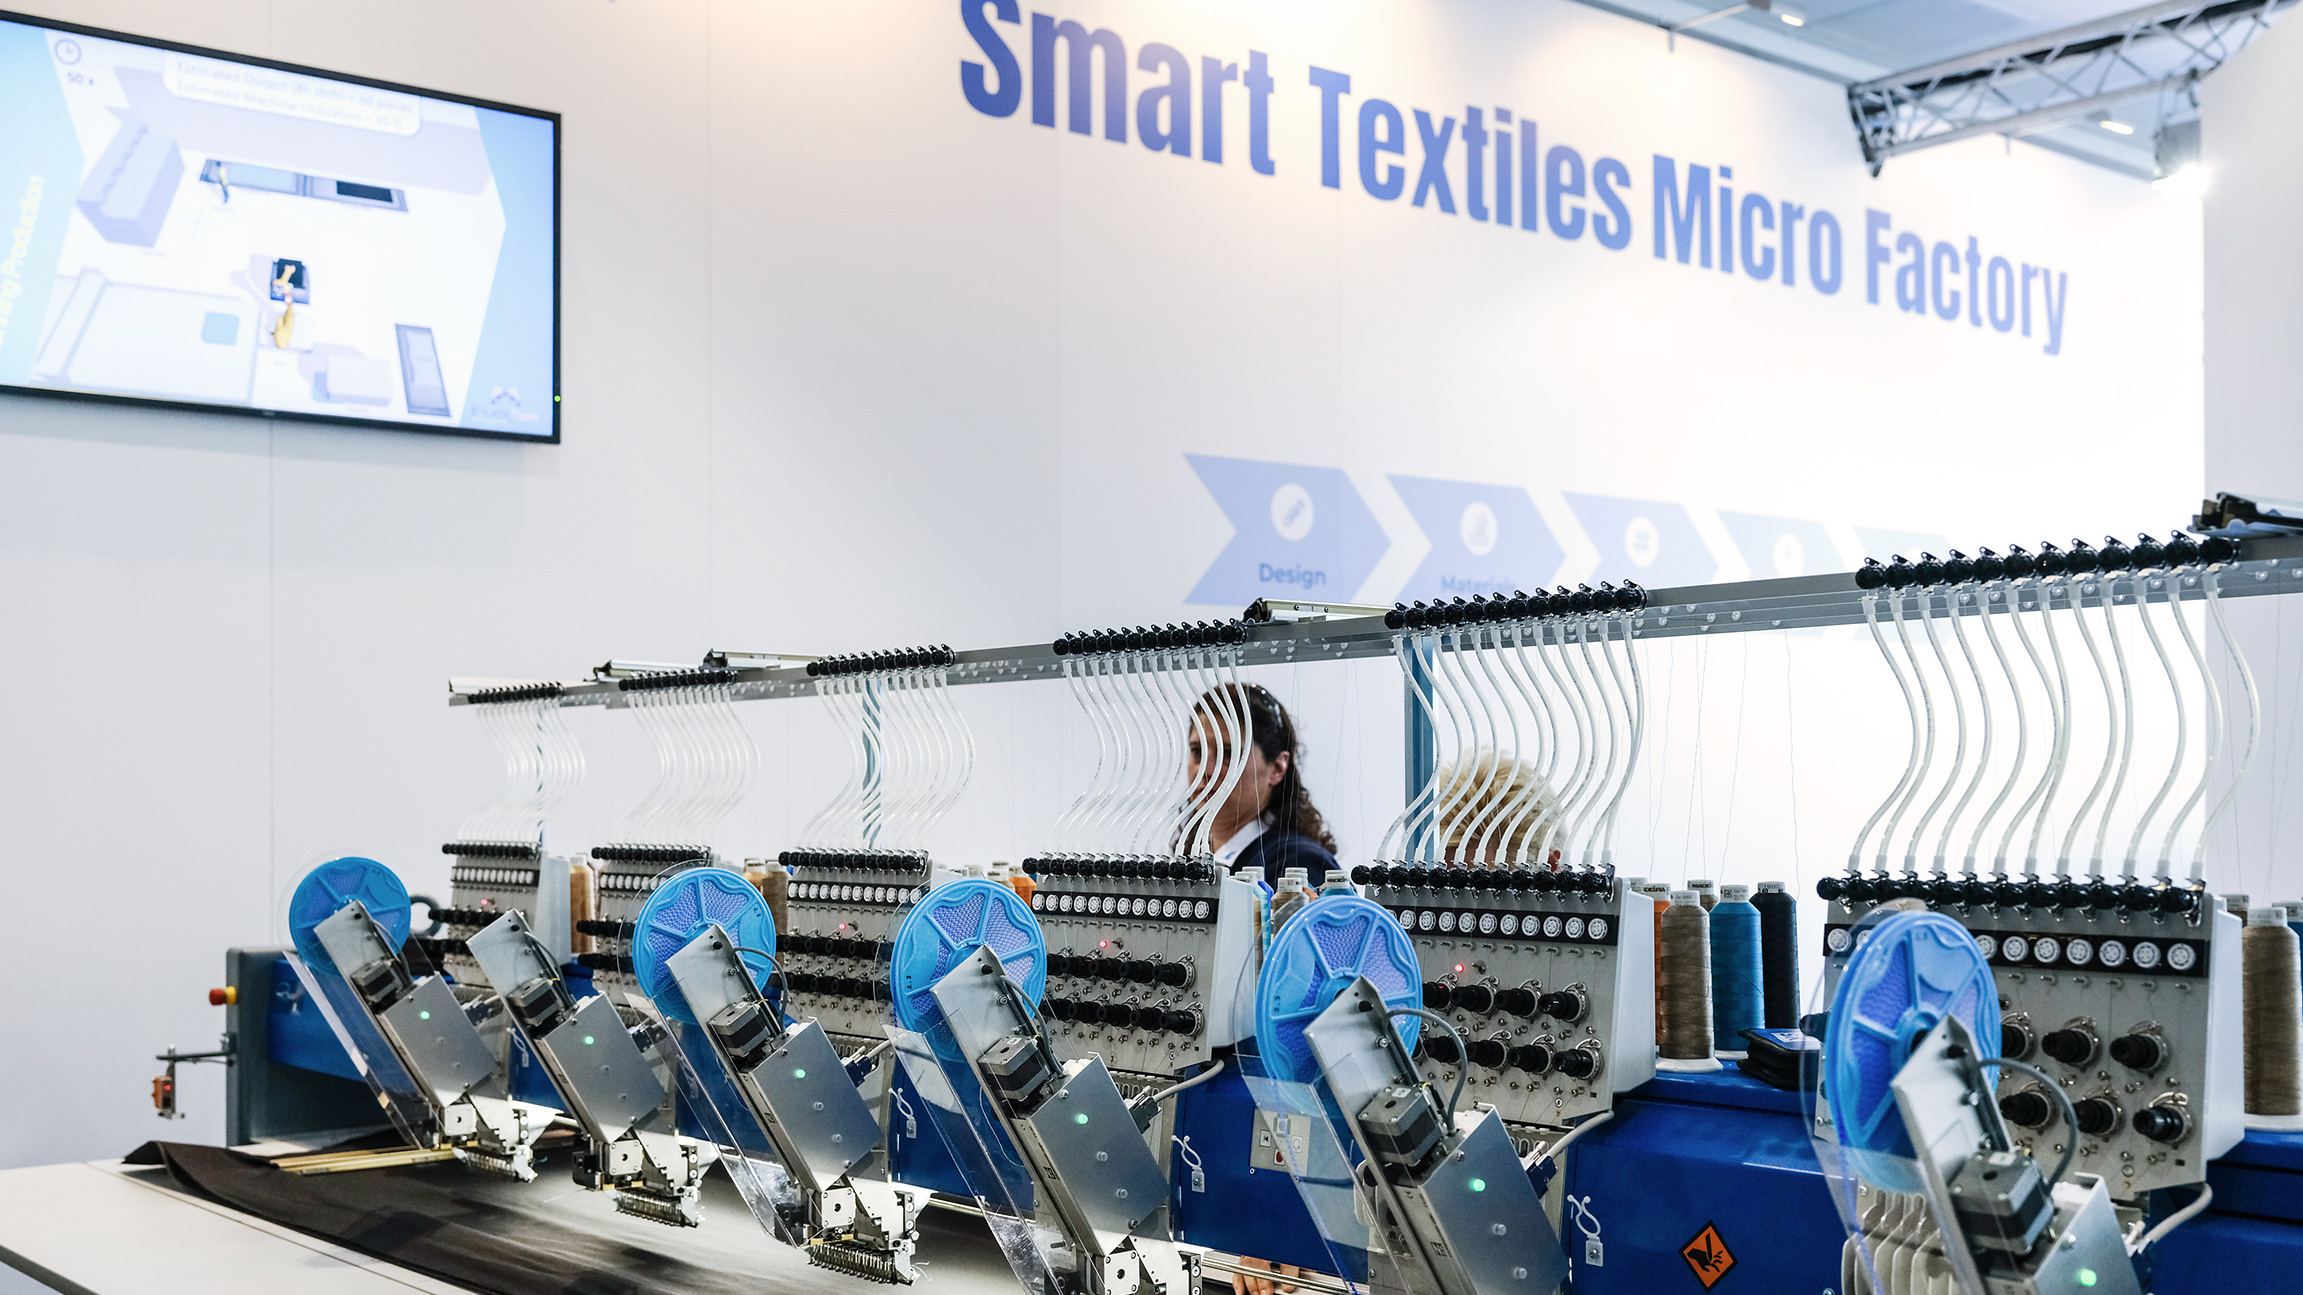 Visitors are talking to an exhibitor in the Digital Textile Micro Factory